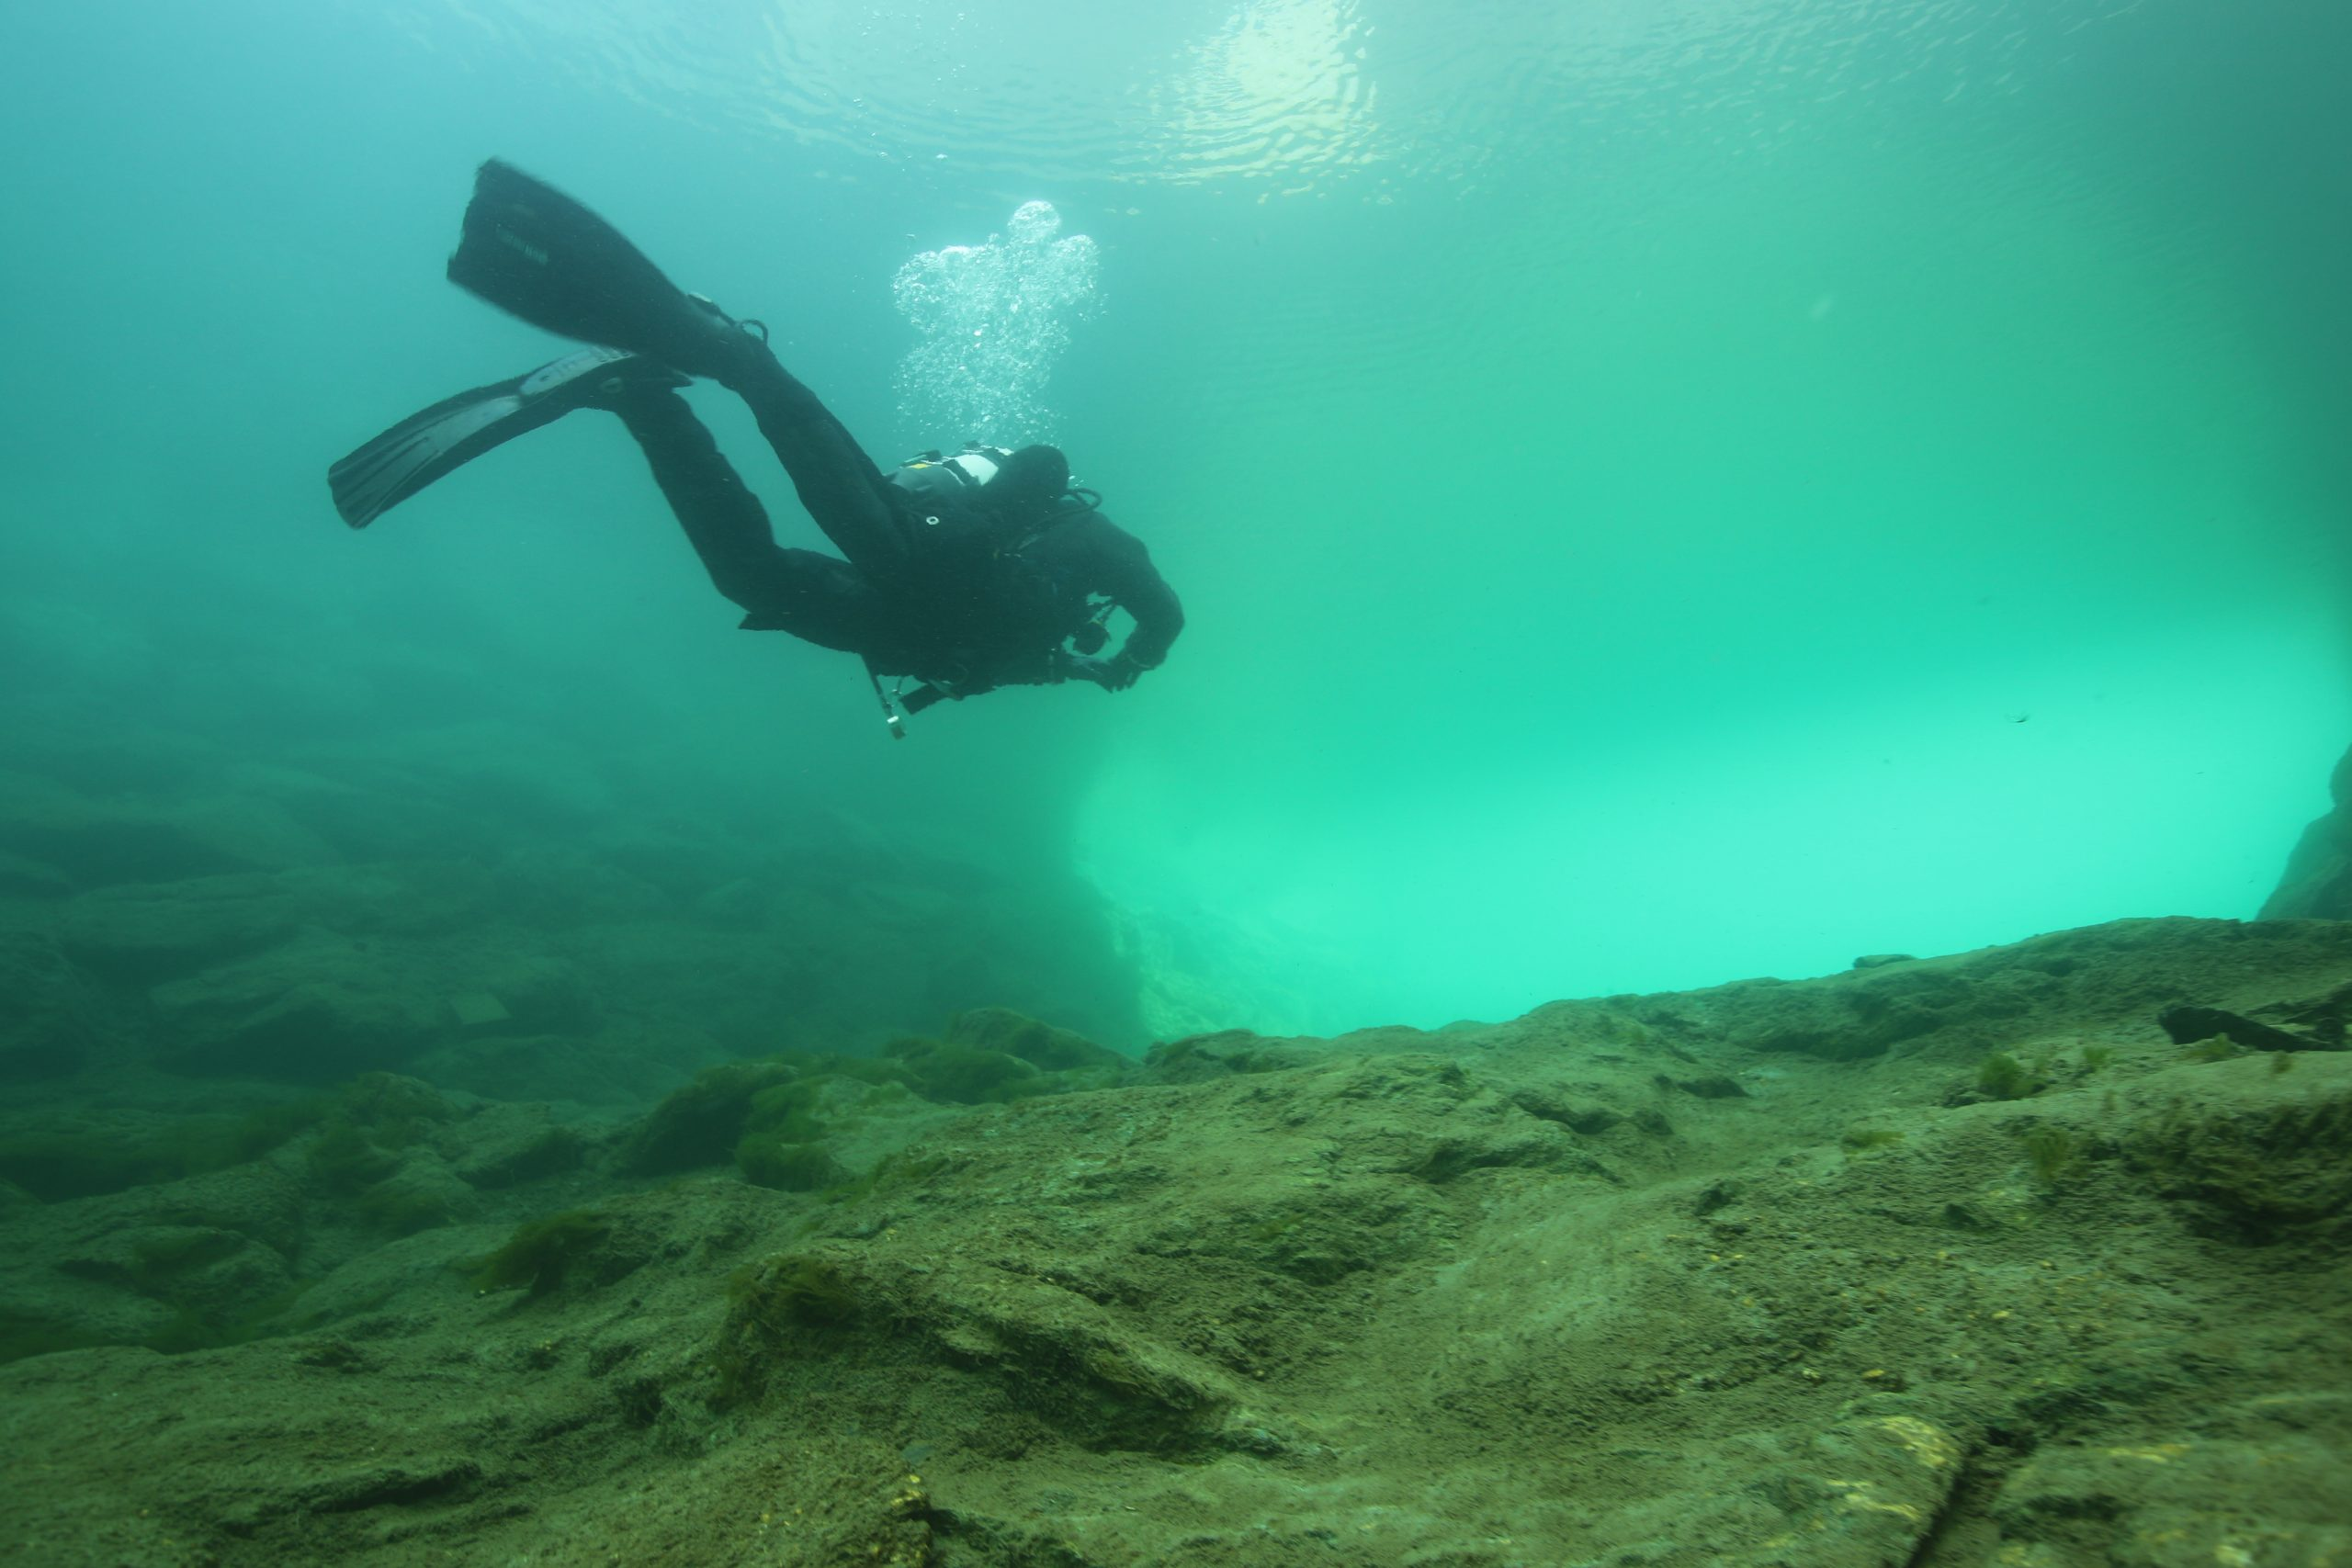 dry suit diving and camera